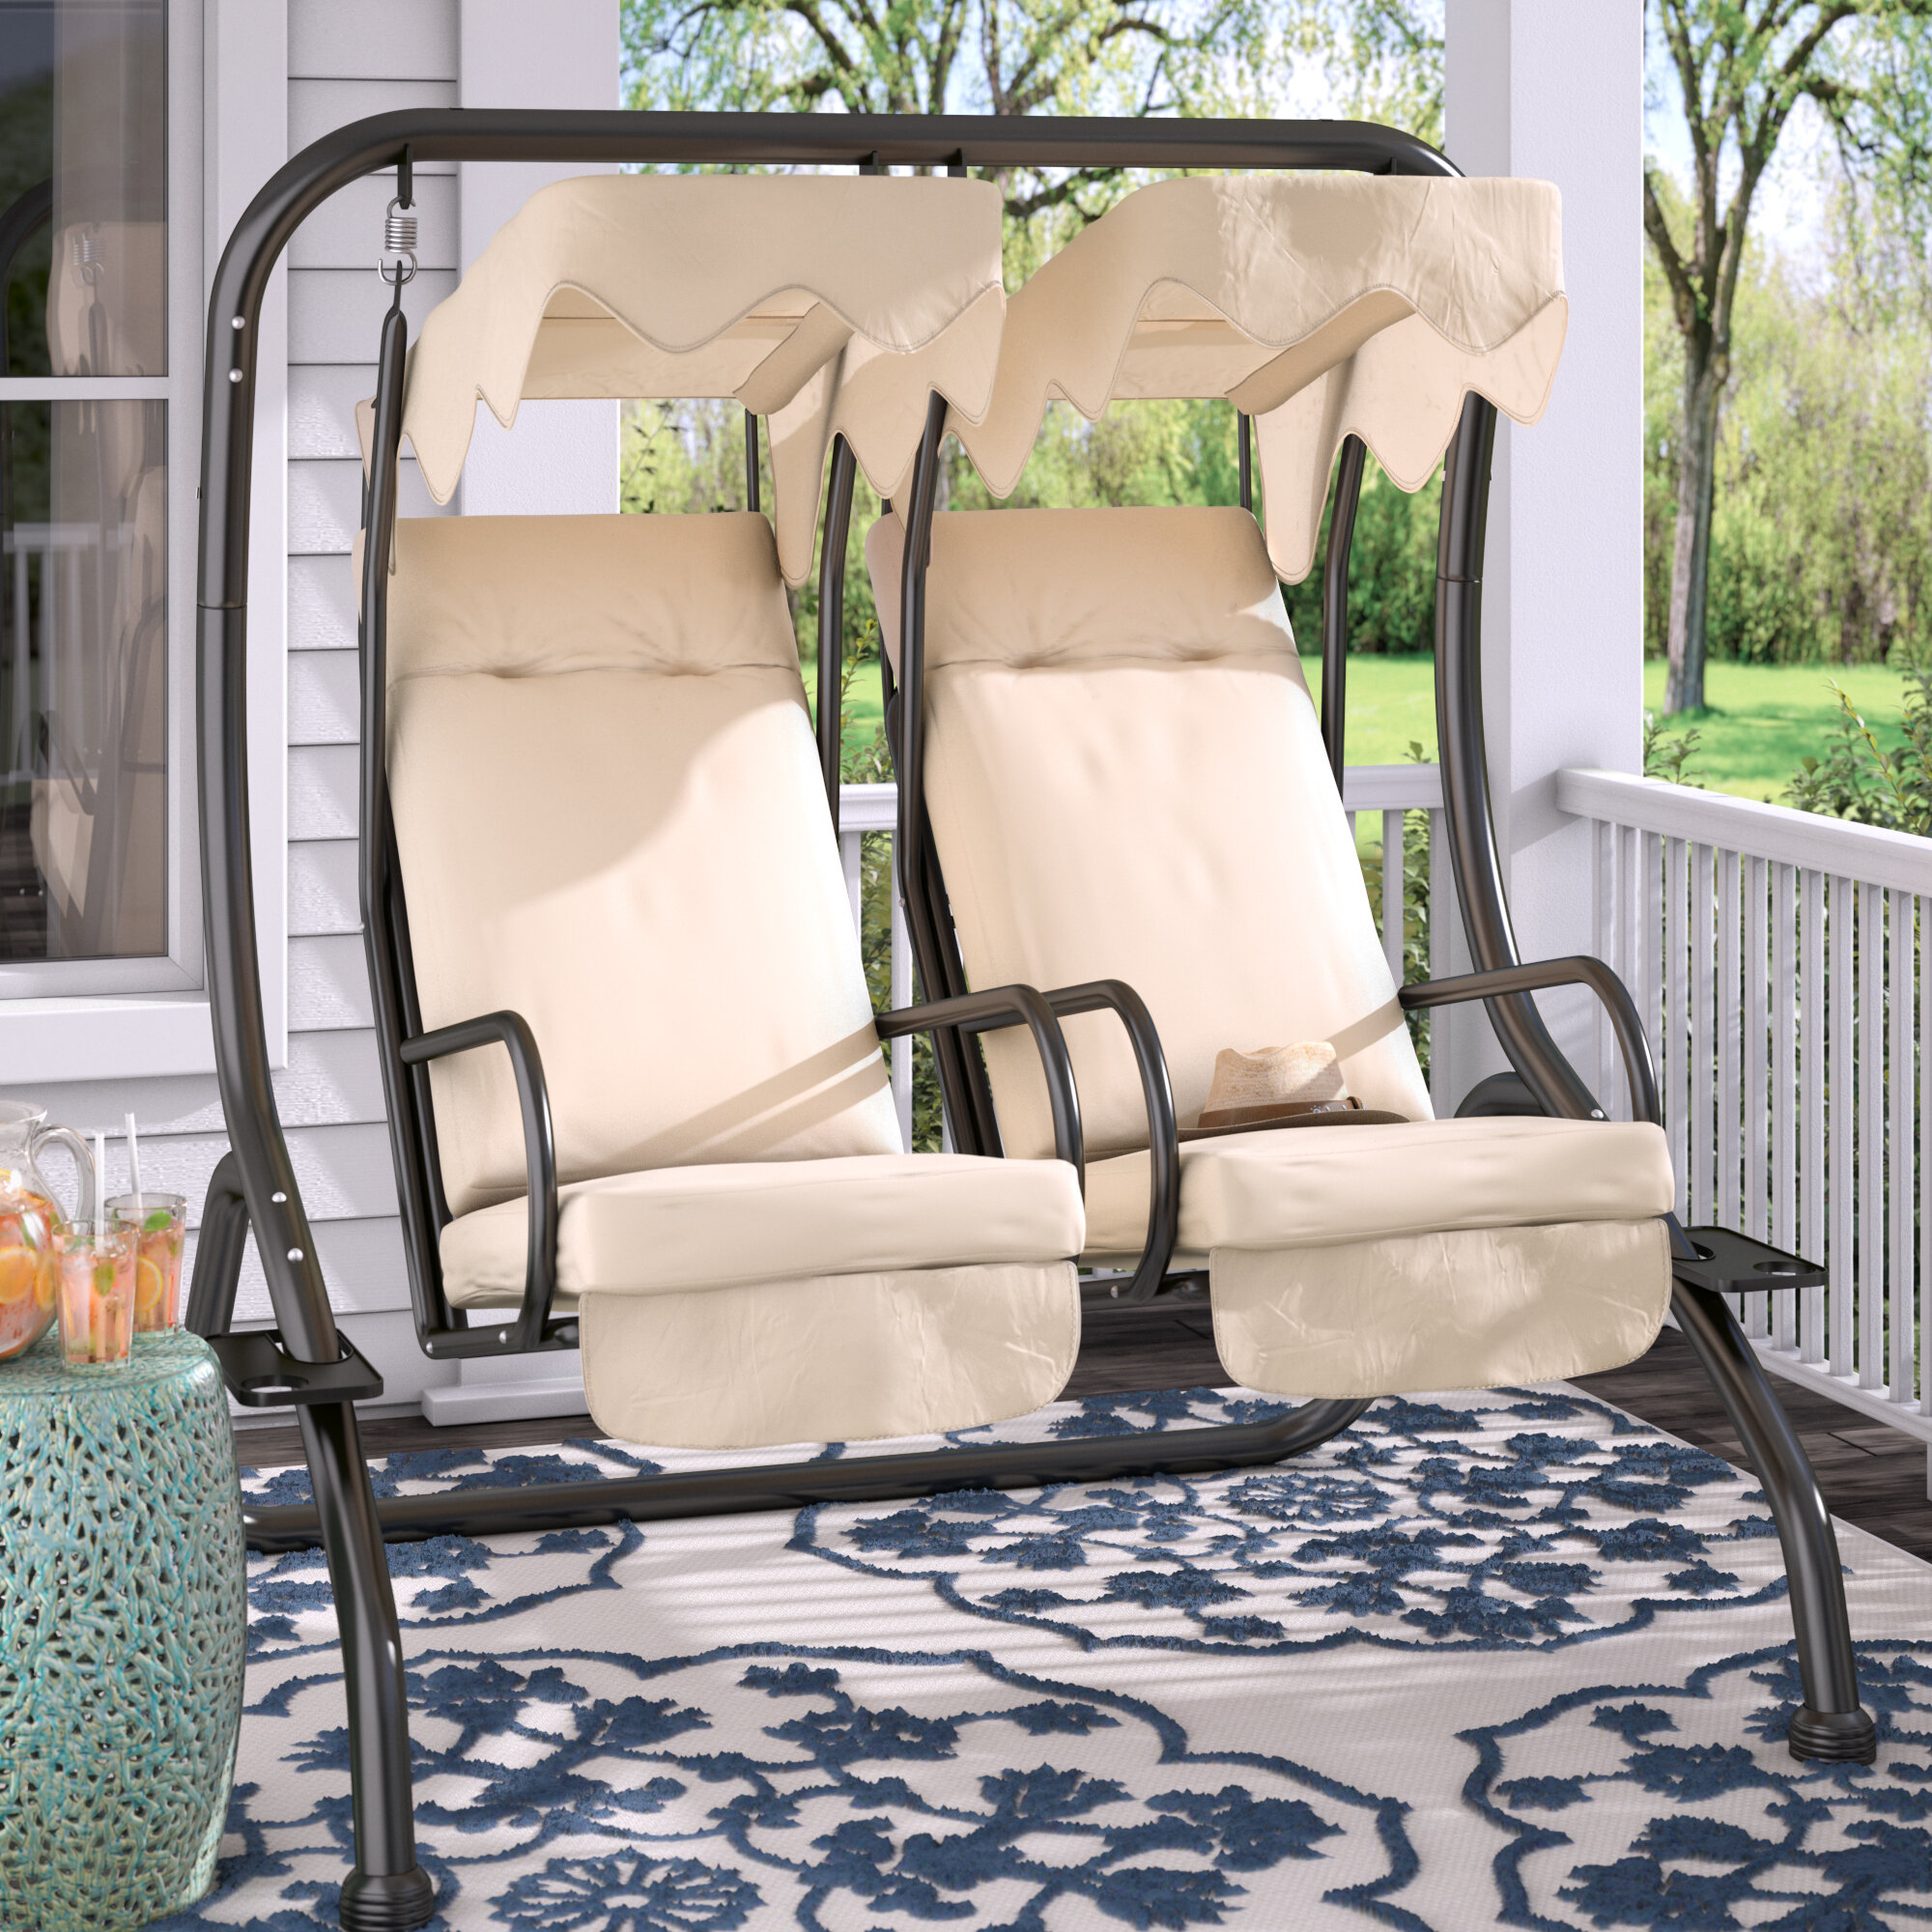 Genial Charlton Home Northbrook Patio Swing With Stand U0026 Reviews | Wayfair